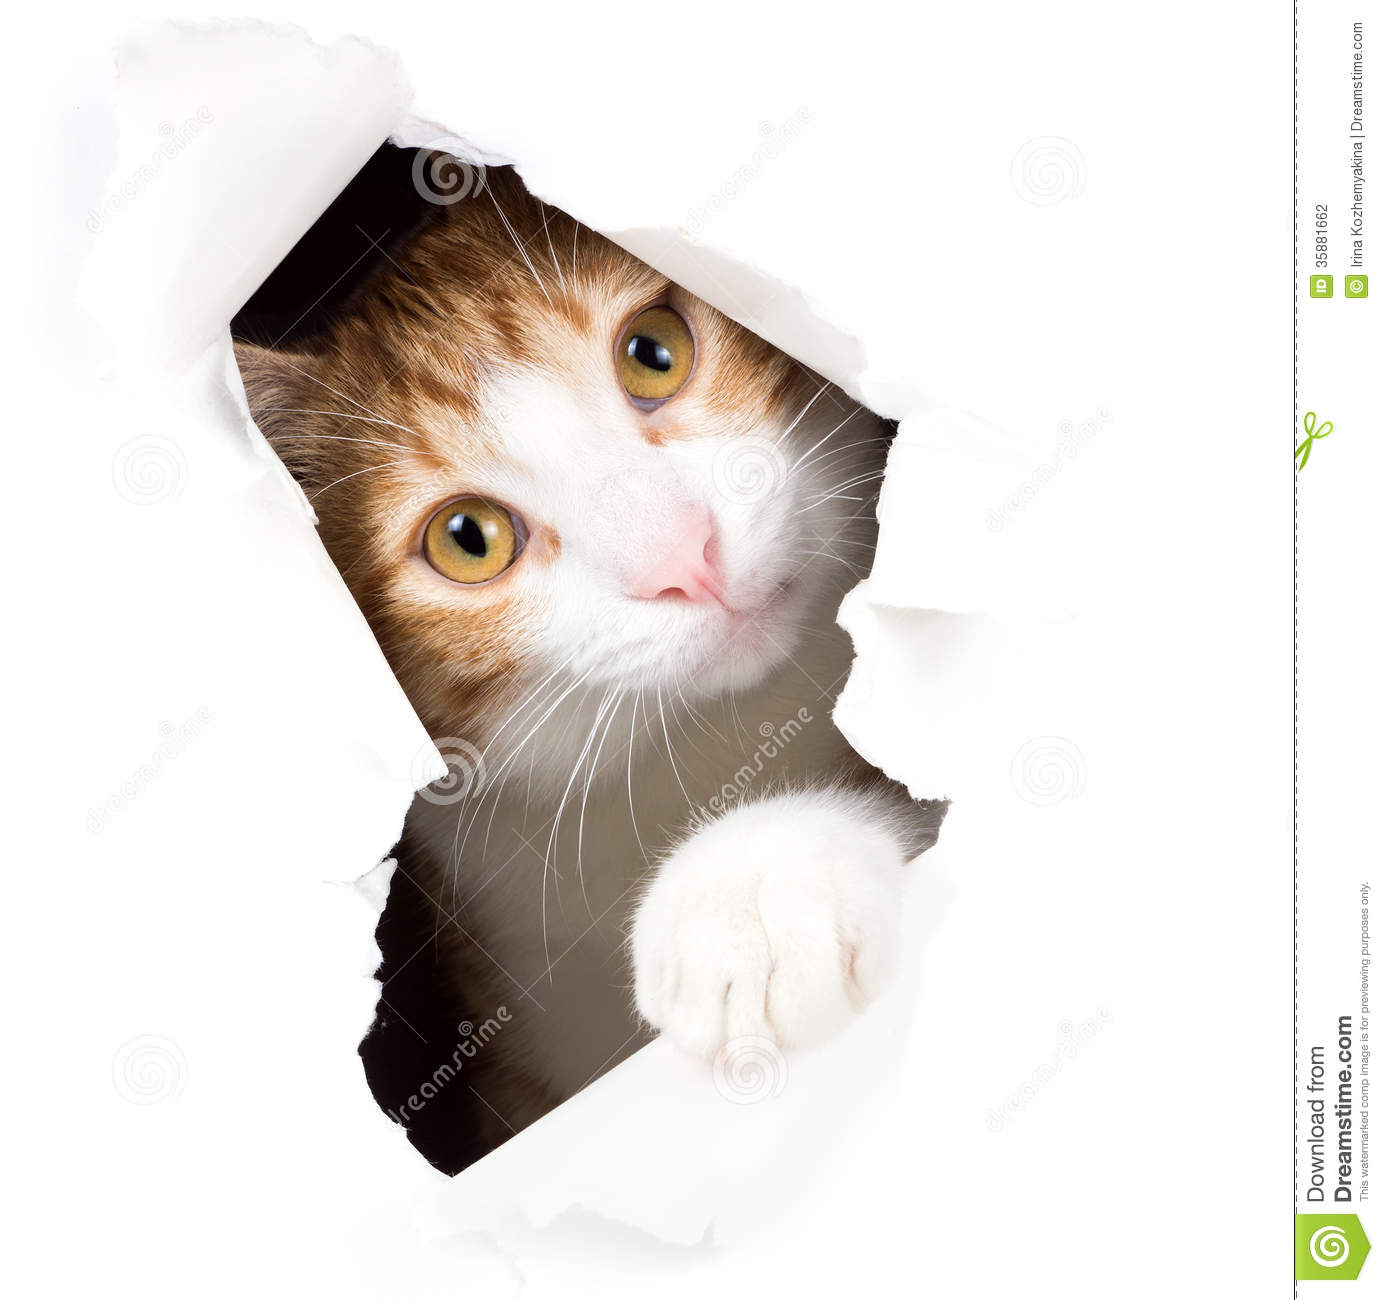 Cat stares through a hole in paper